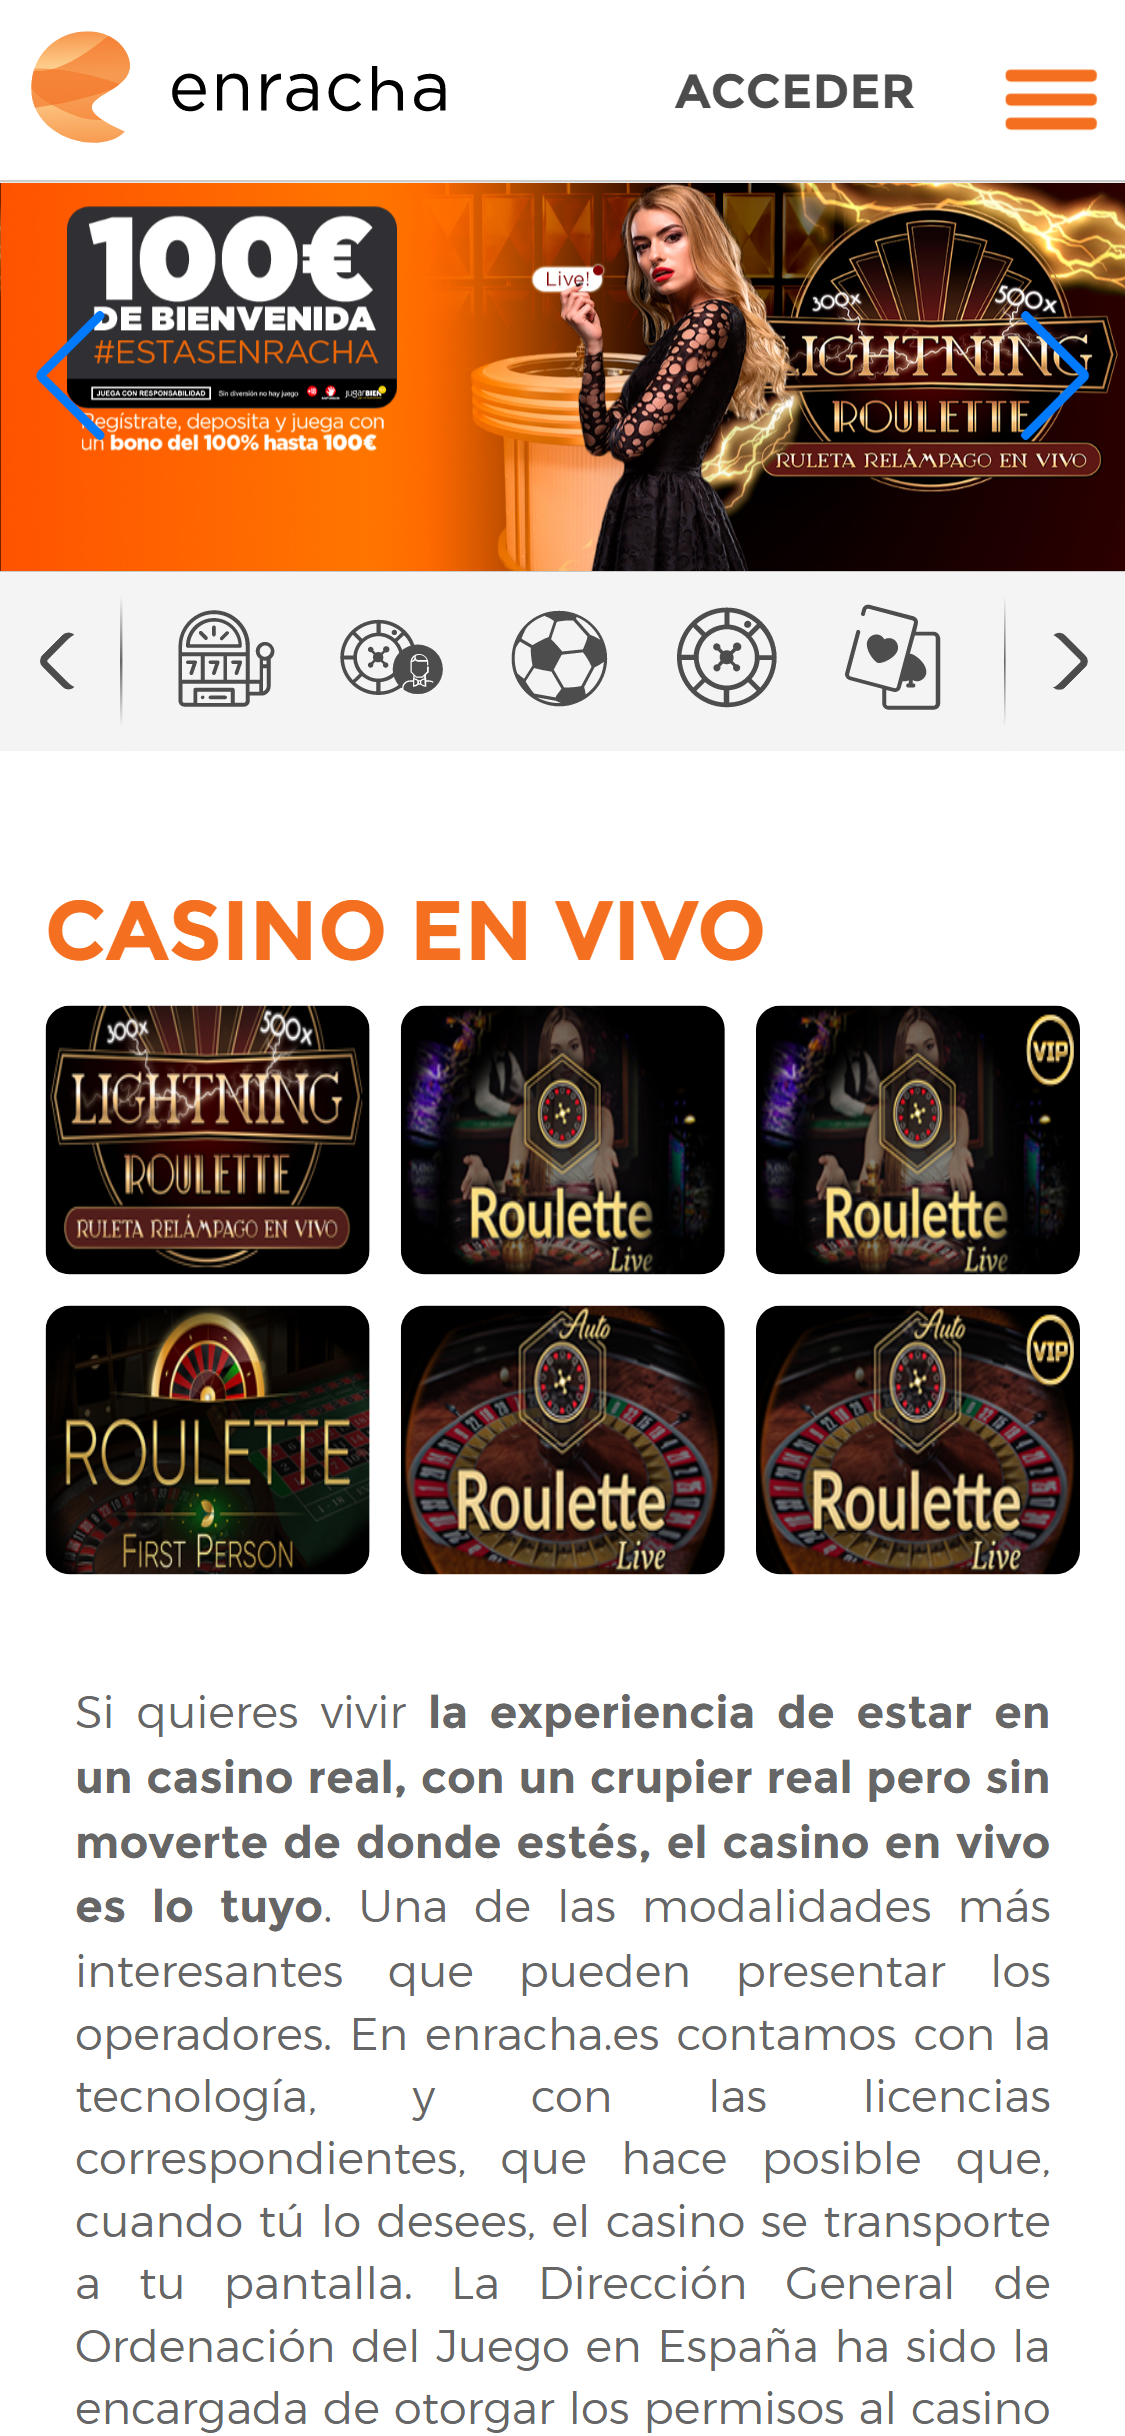 Enracha Live Dealer Games